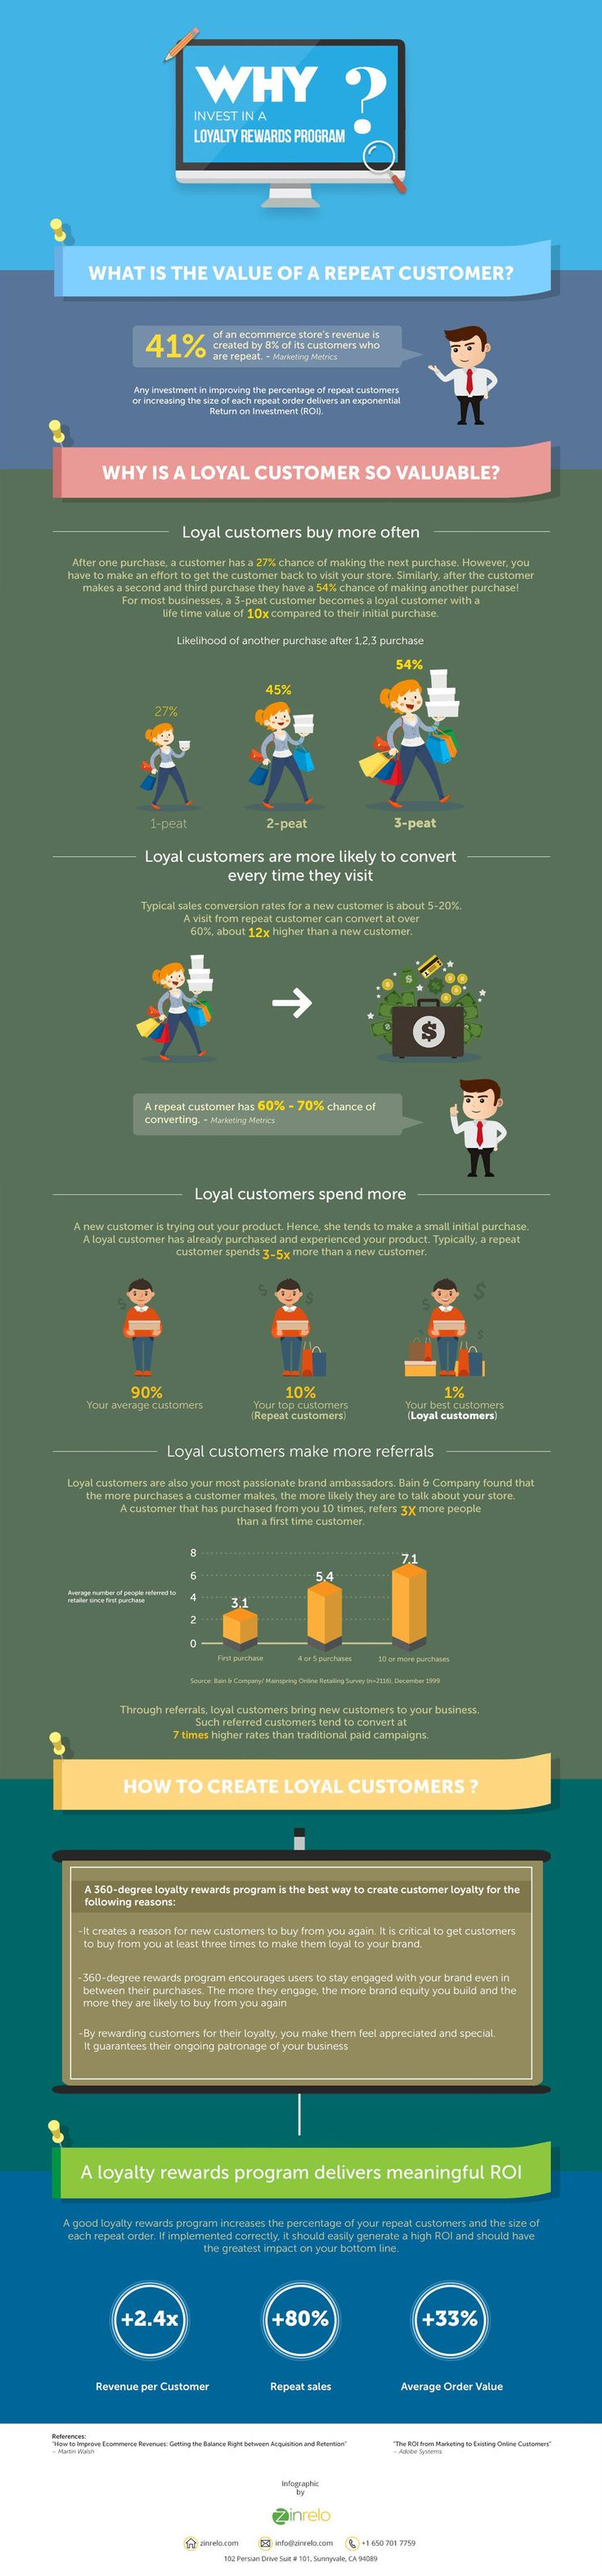 Why Invest in a Loyalty Rewards Program #Infographic #Business